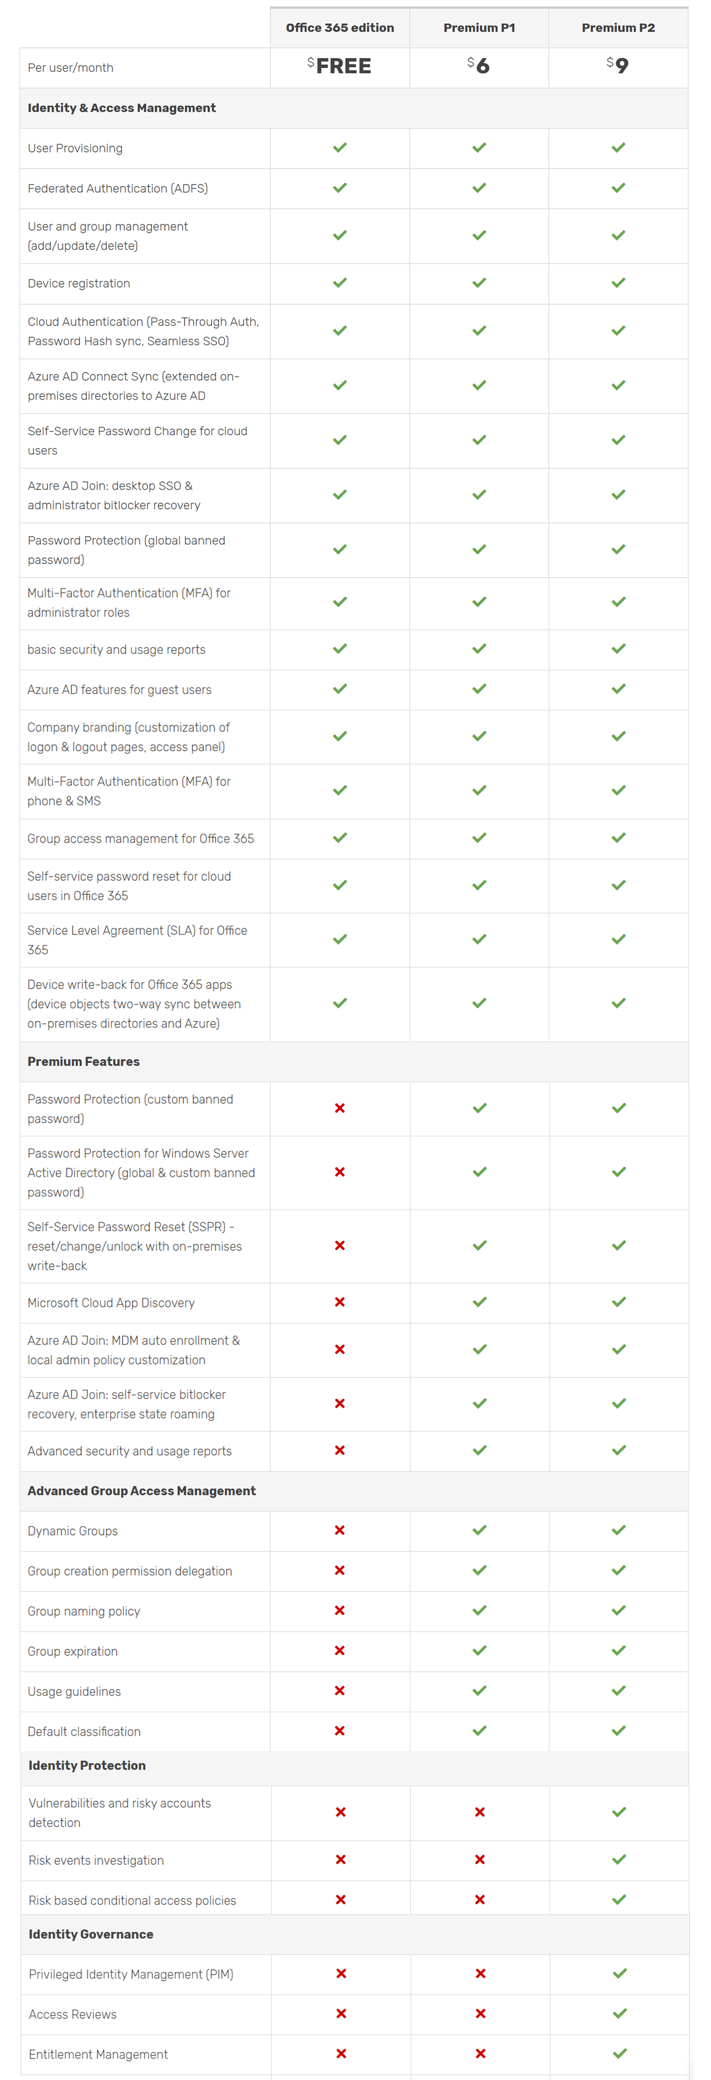 Azure AD P1 v P2 comparison table-2